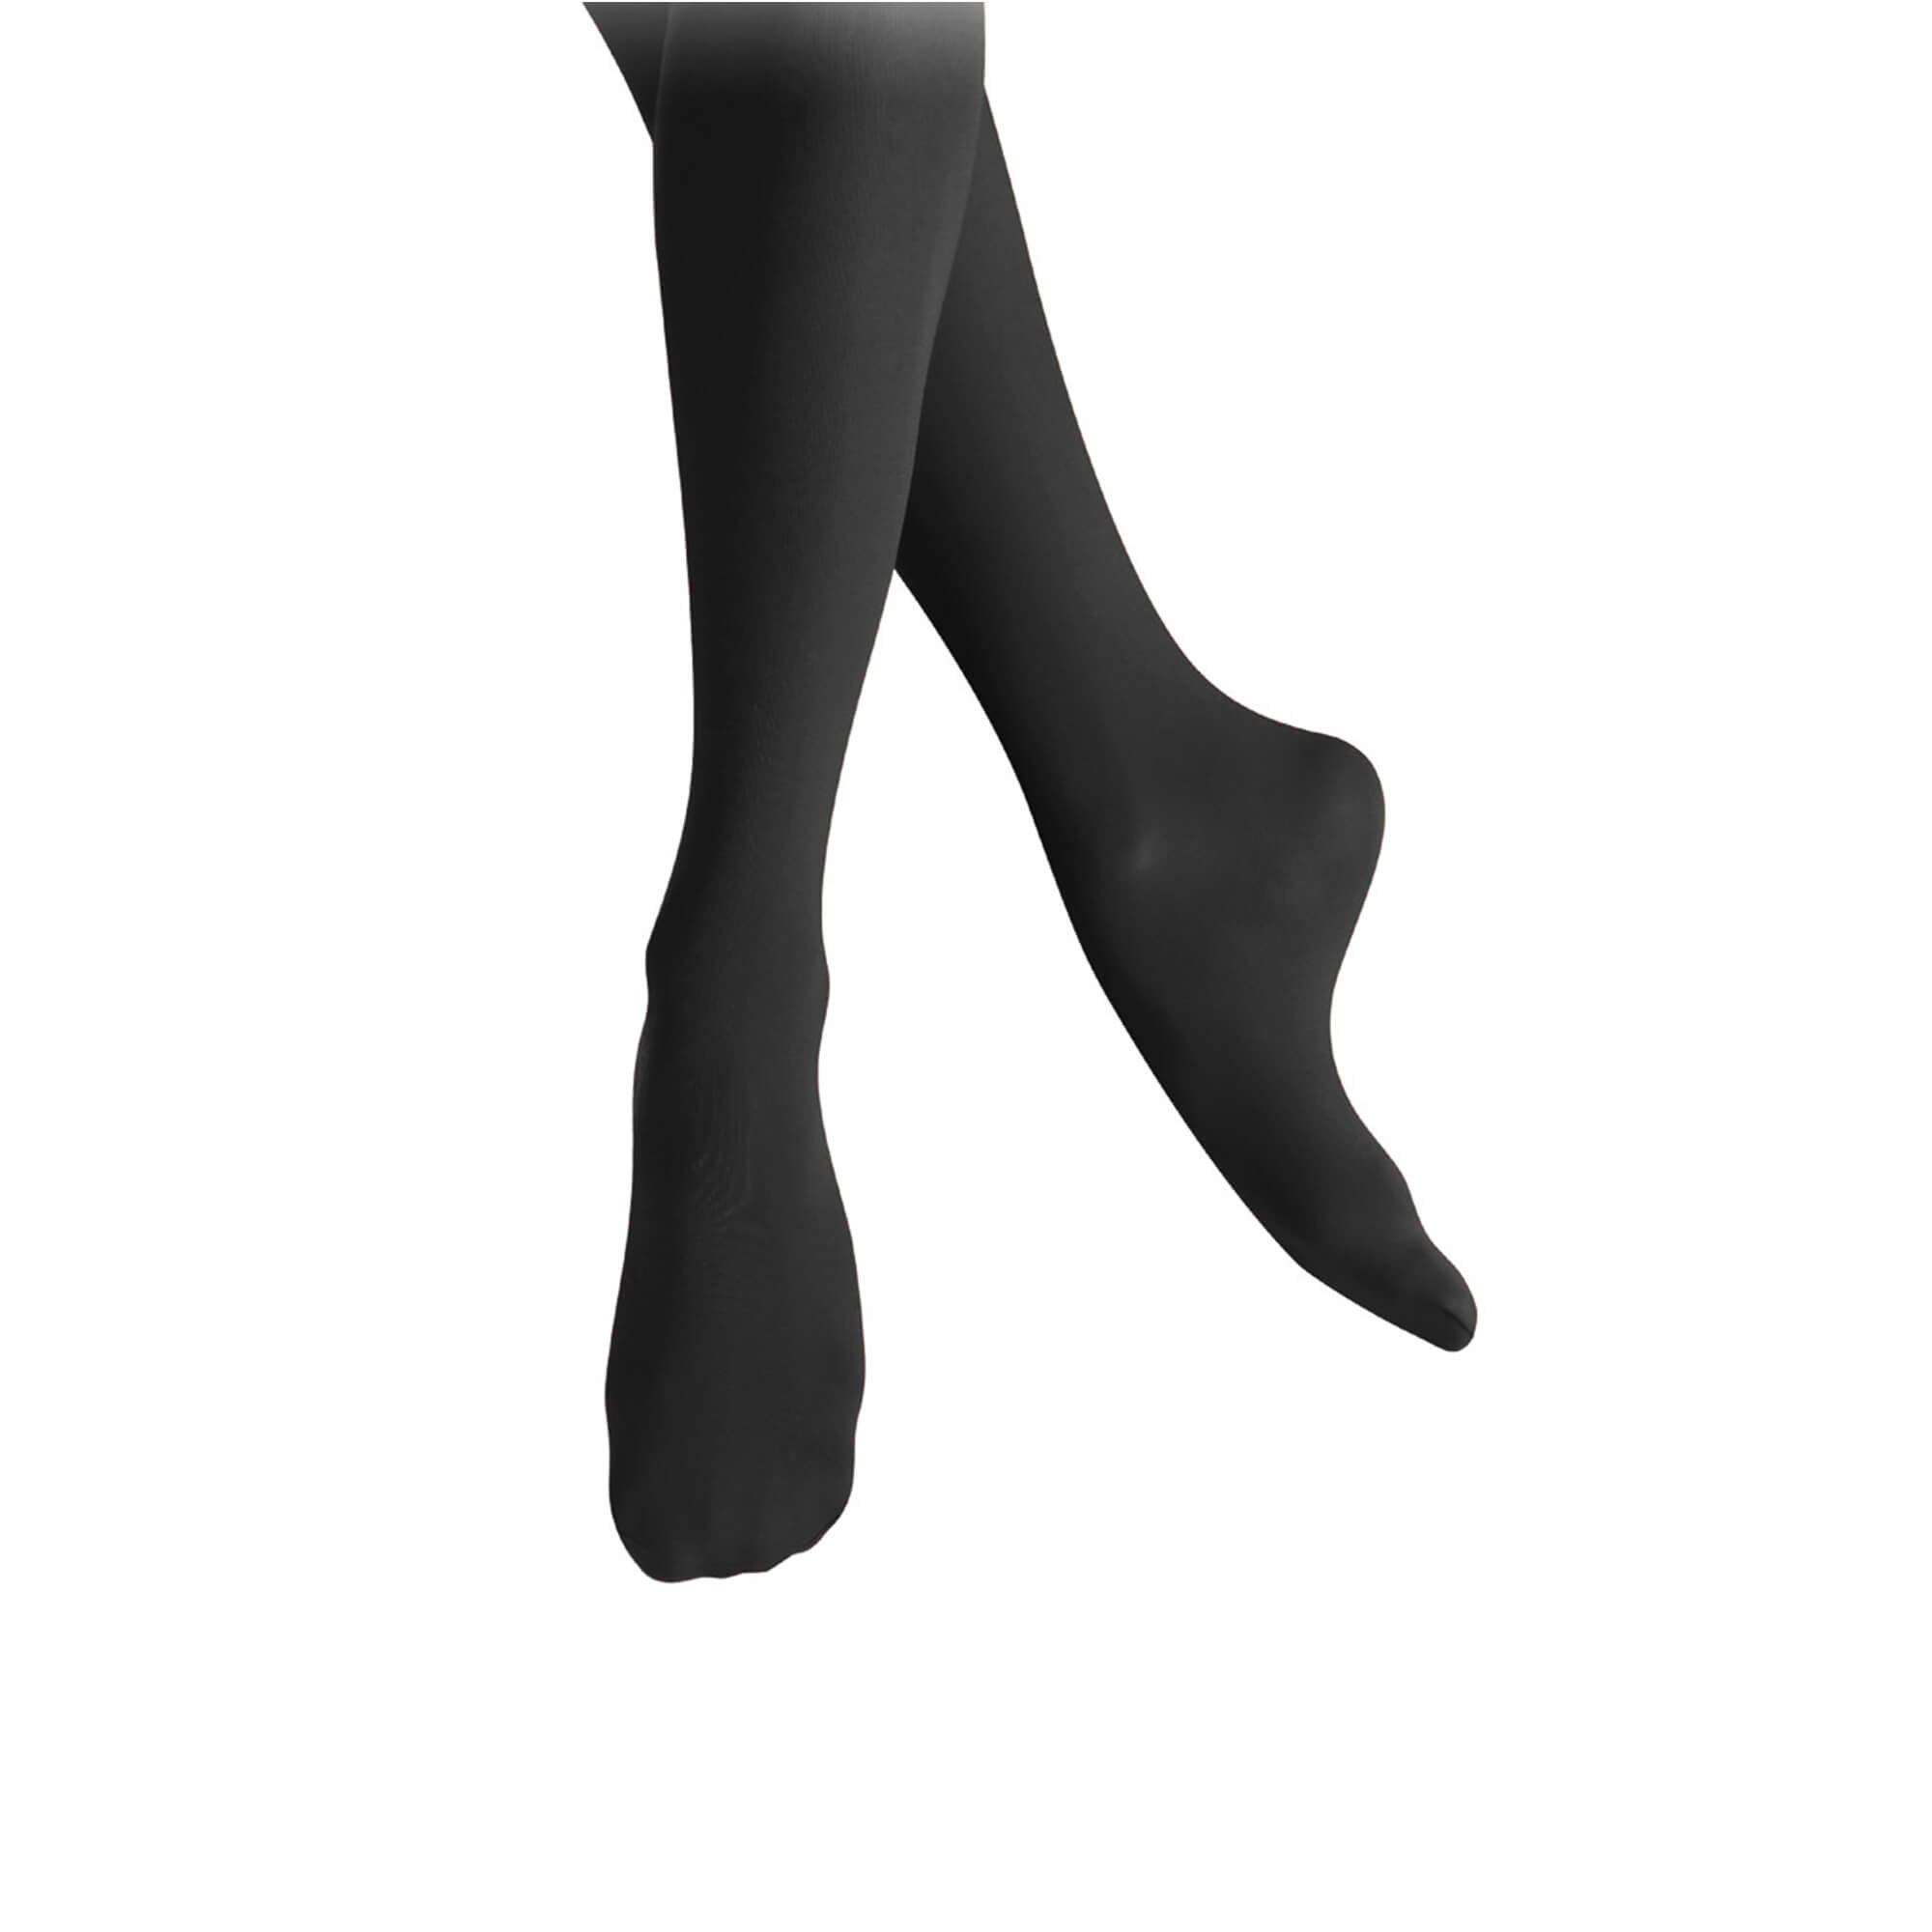 Leos Childrens Firm Fit Convertible Supplex Tights